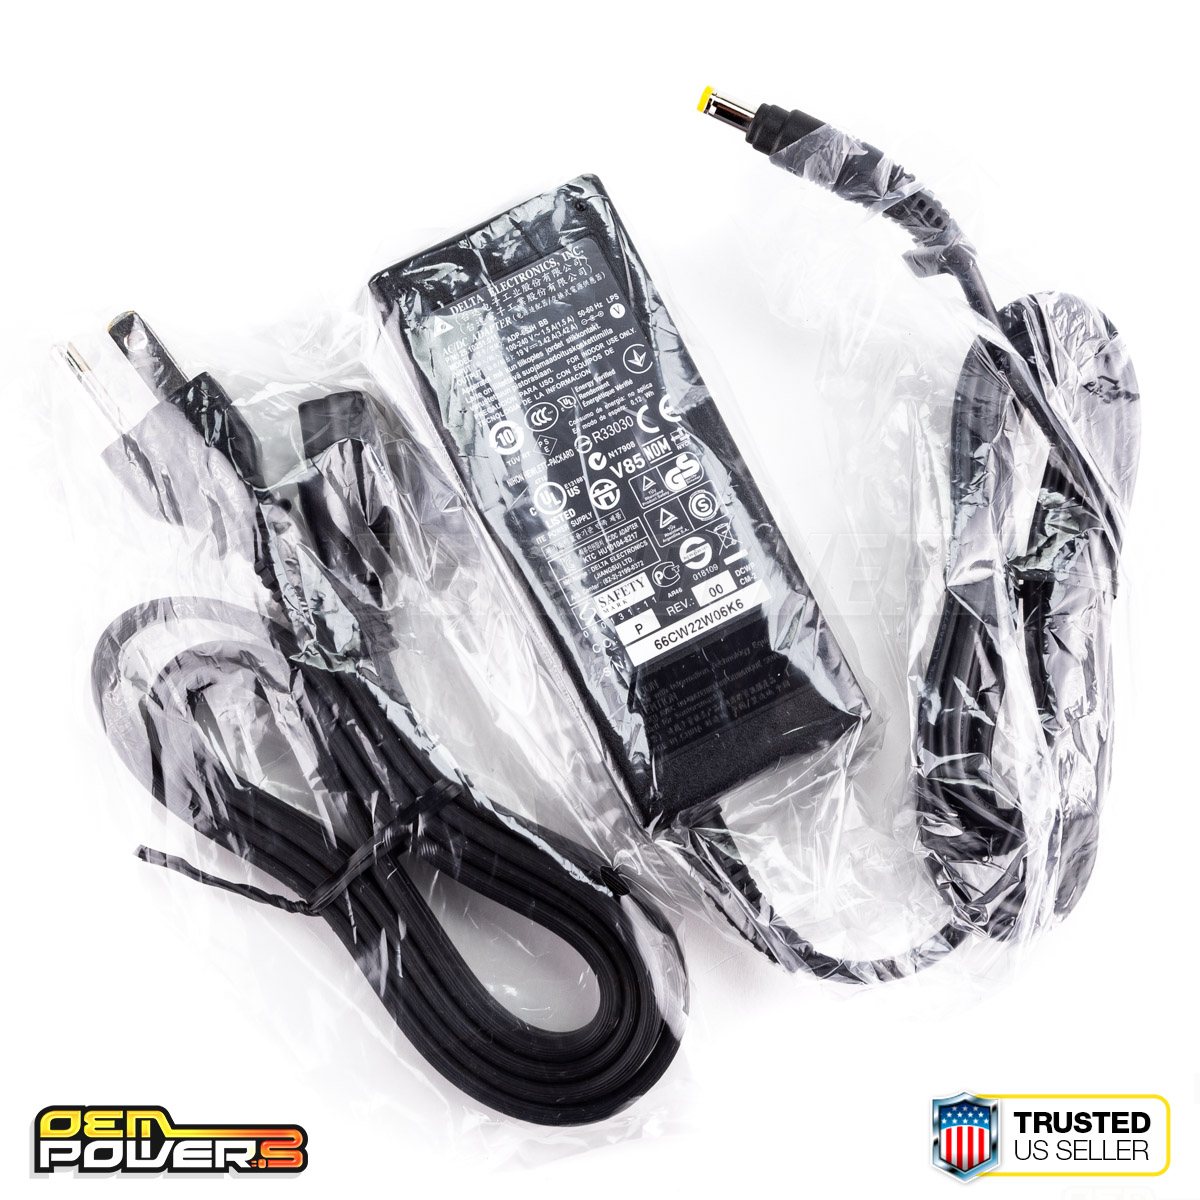 New Original OEM HP Thin Flexible Client Power Supply 688945-001 587303-001 65W